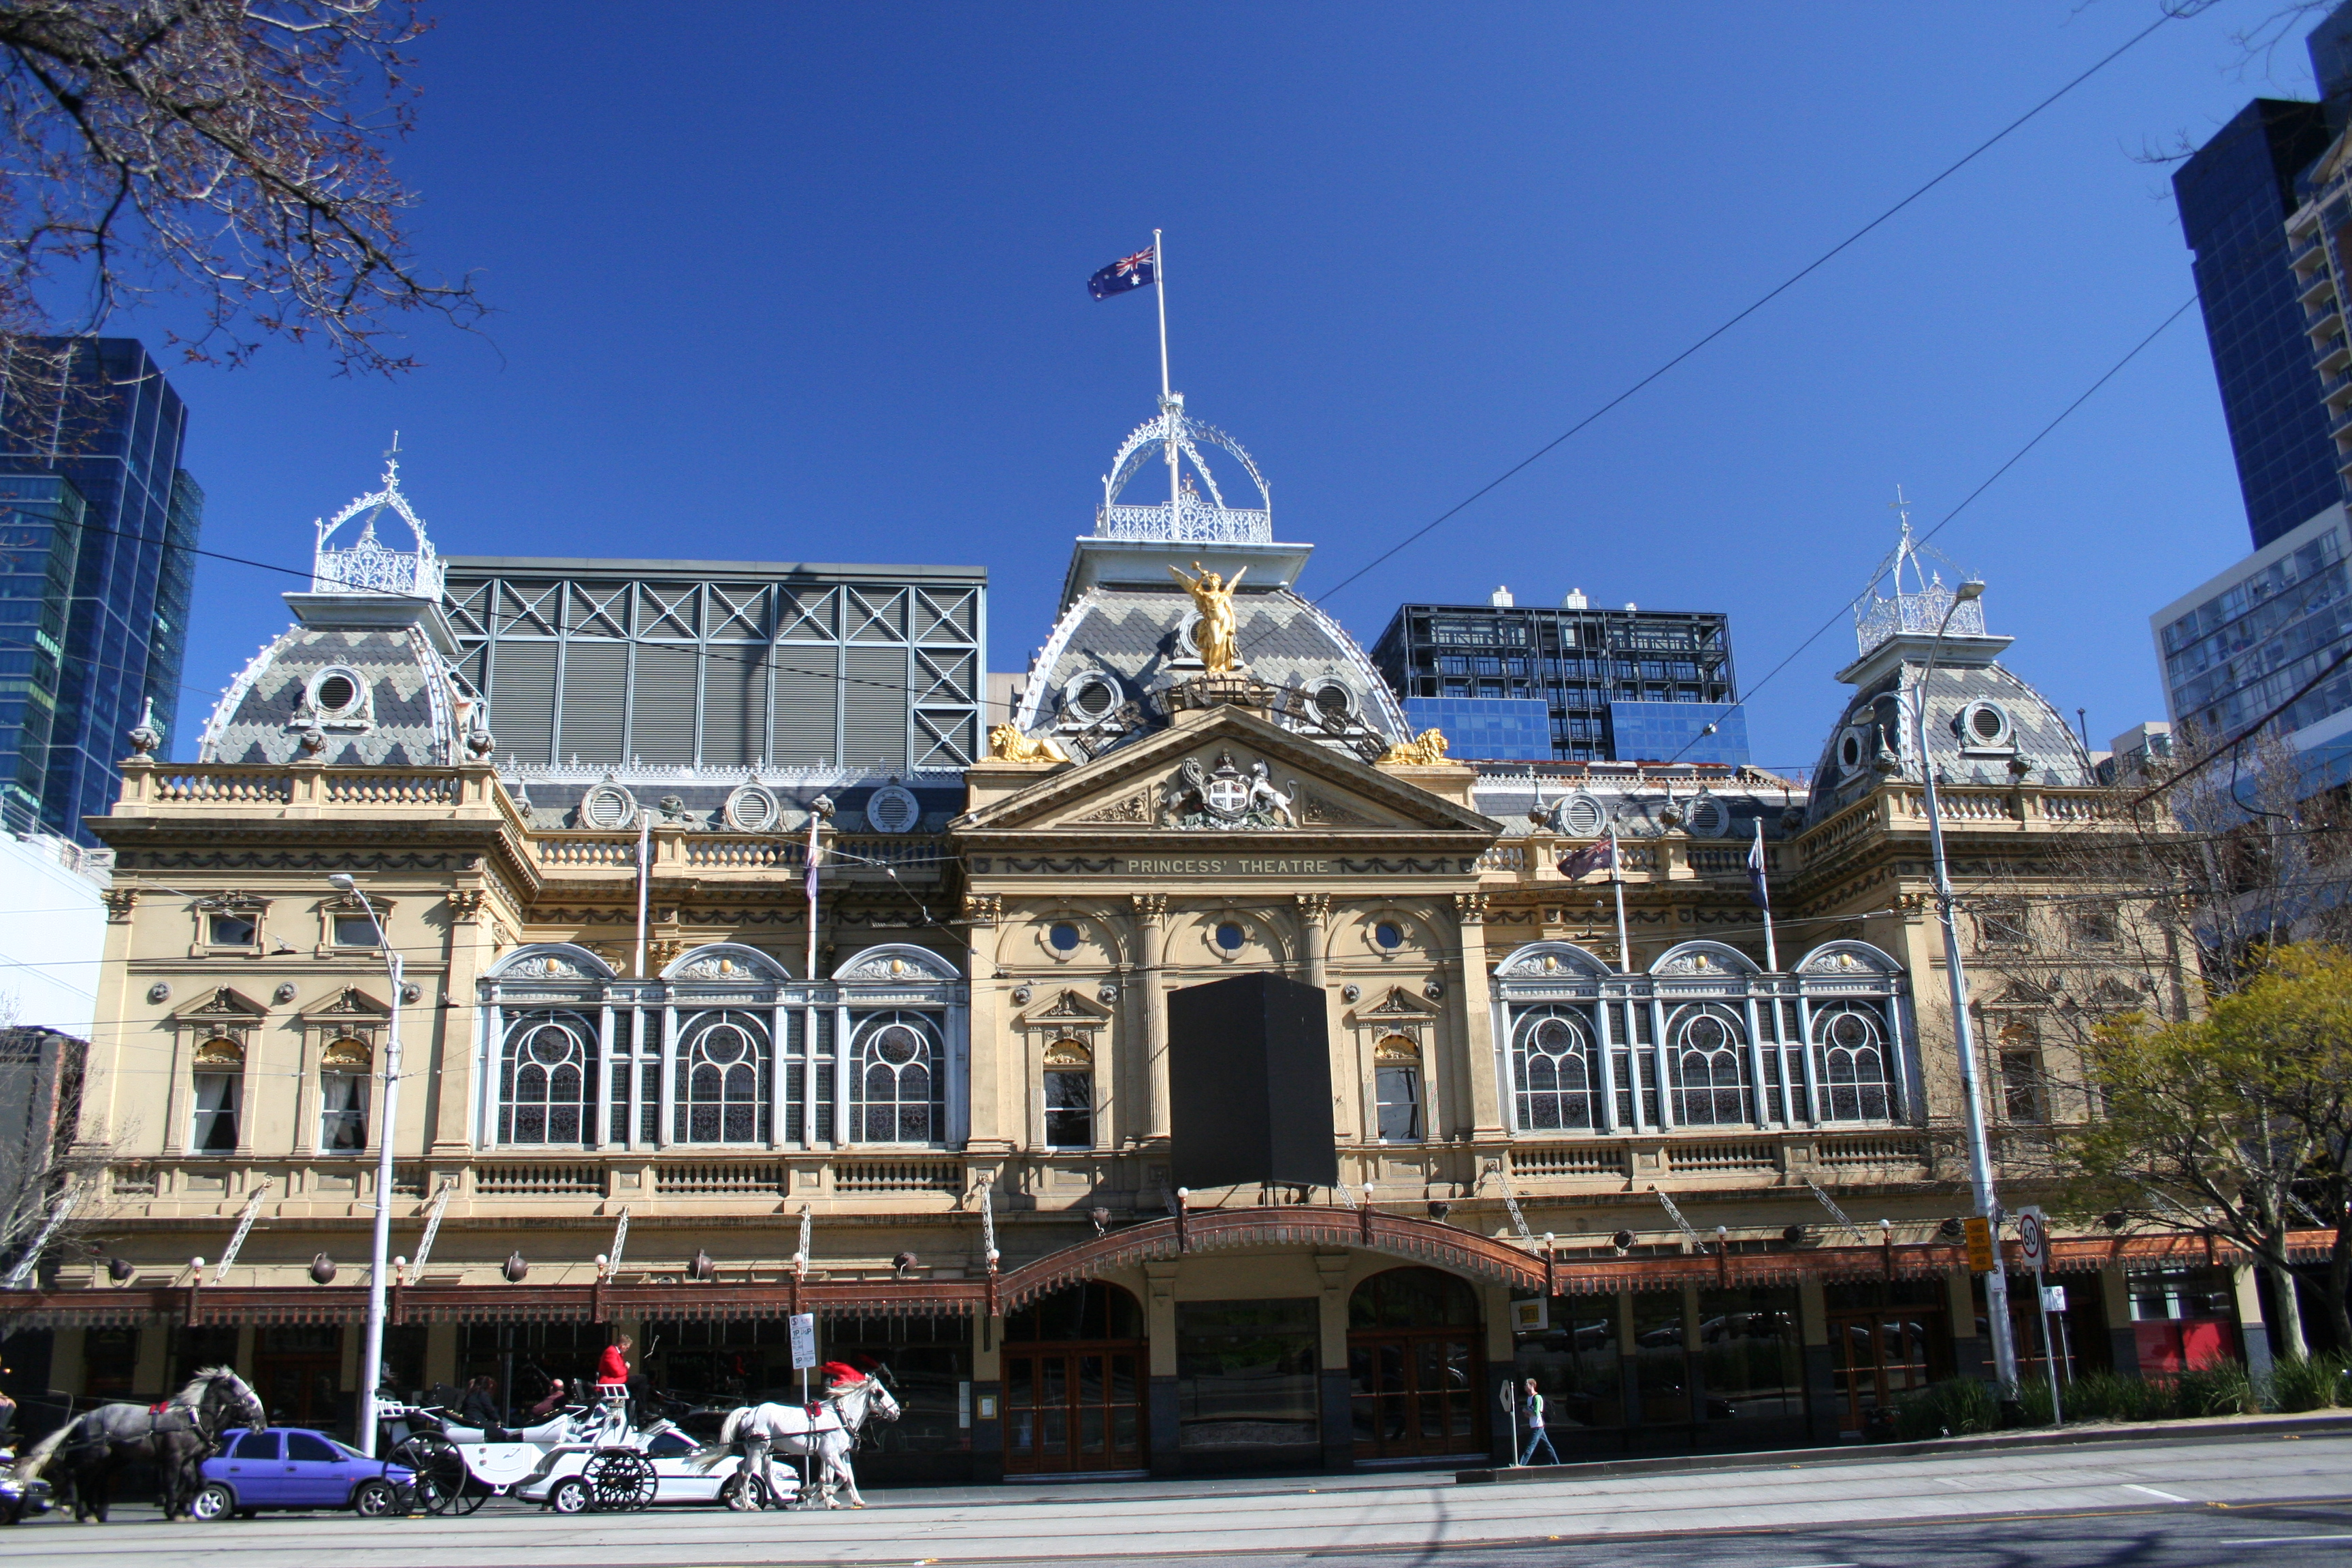 Princess Theatre Melbourne Australia 3456 x 2304